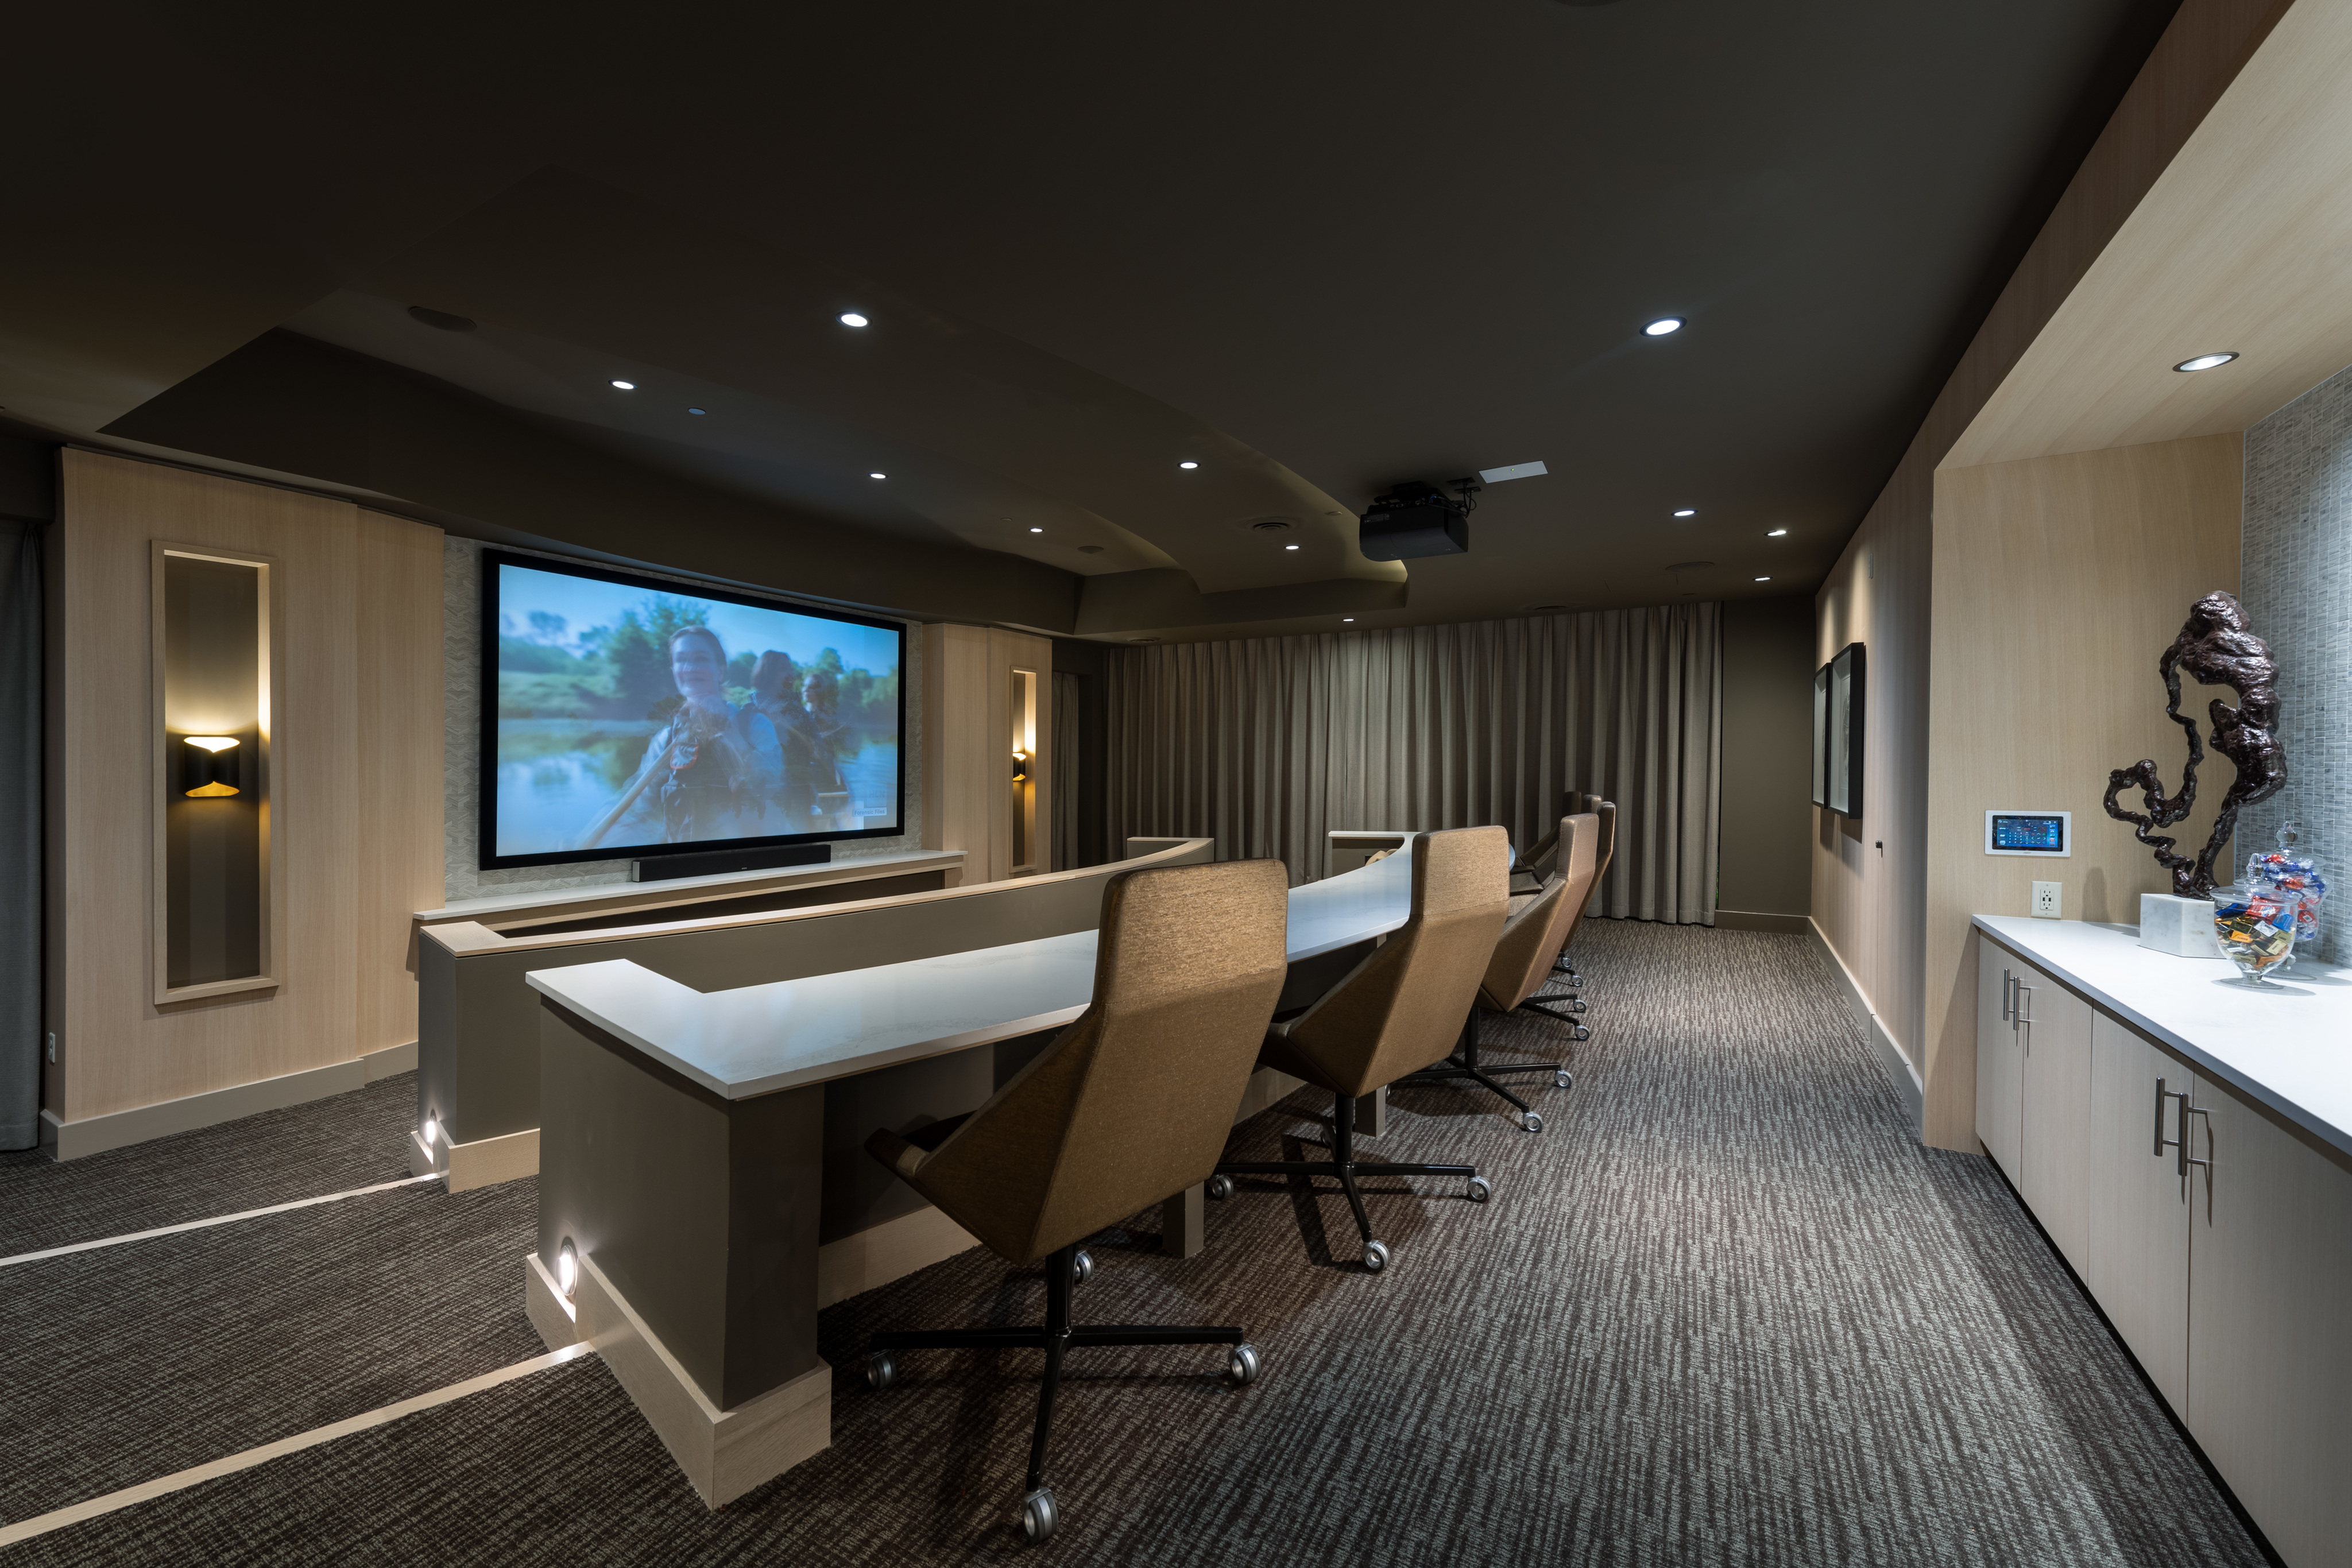 Private Media Room with HD Projector, Surround-Sound and Theater-Style Seating at Hanover Westford Valley